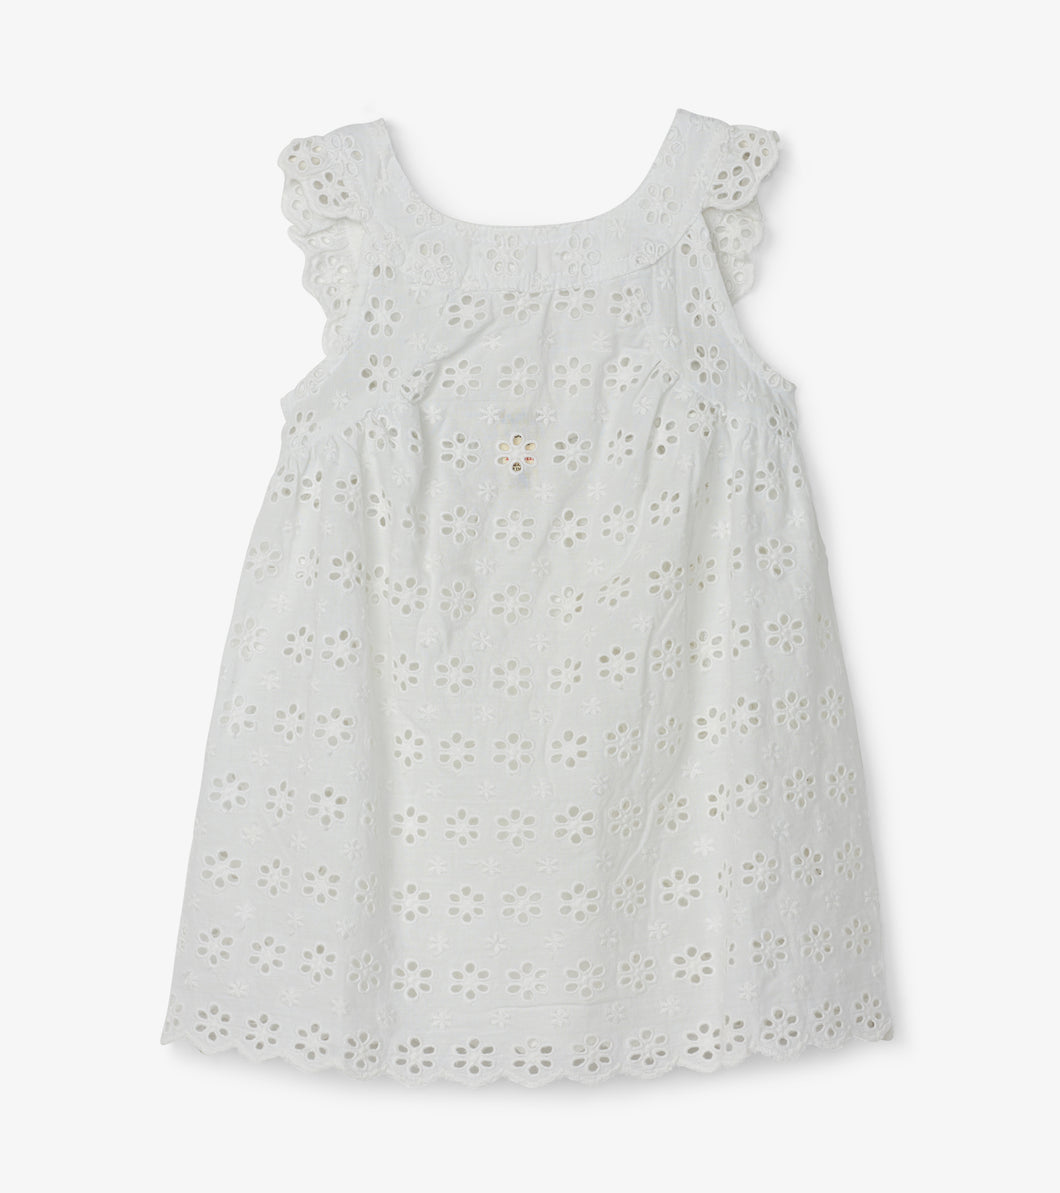 Hatley Spring Blossoms Baby Eyelet Dress